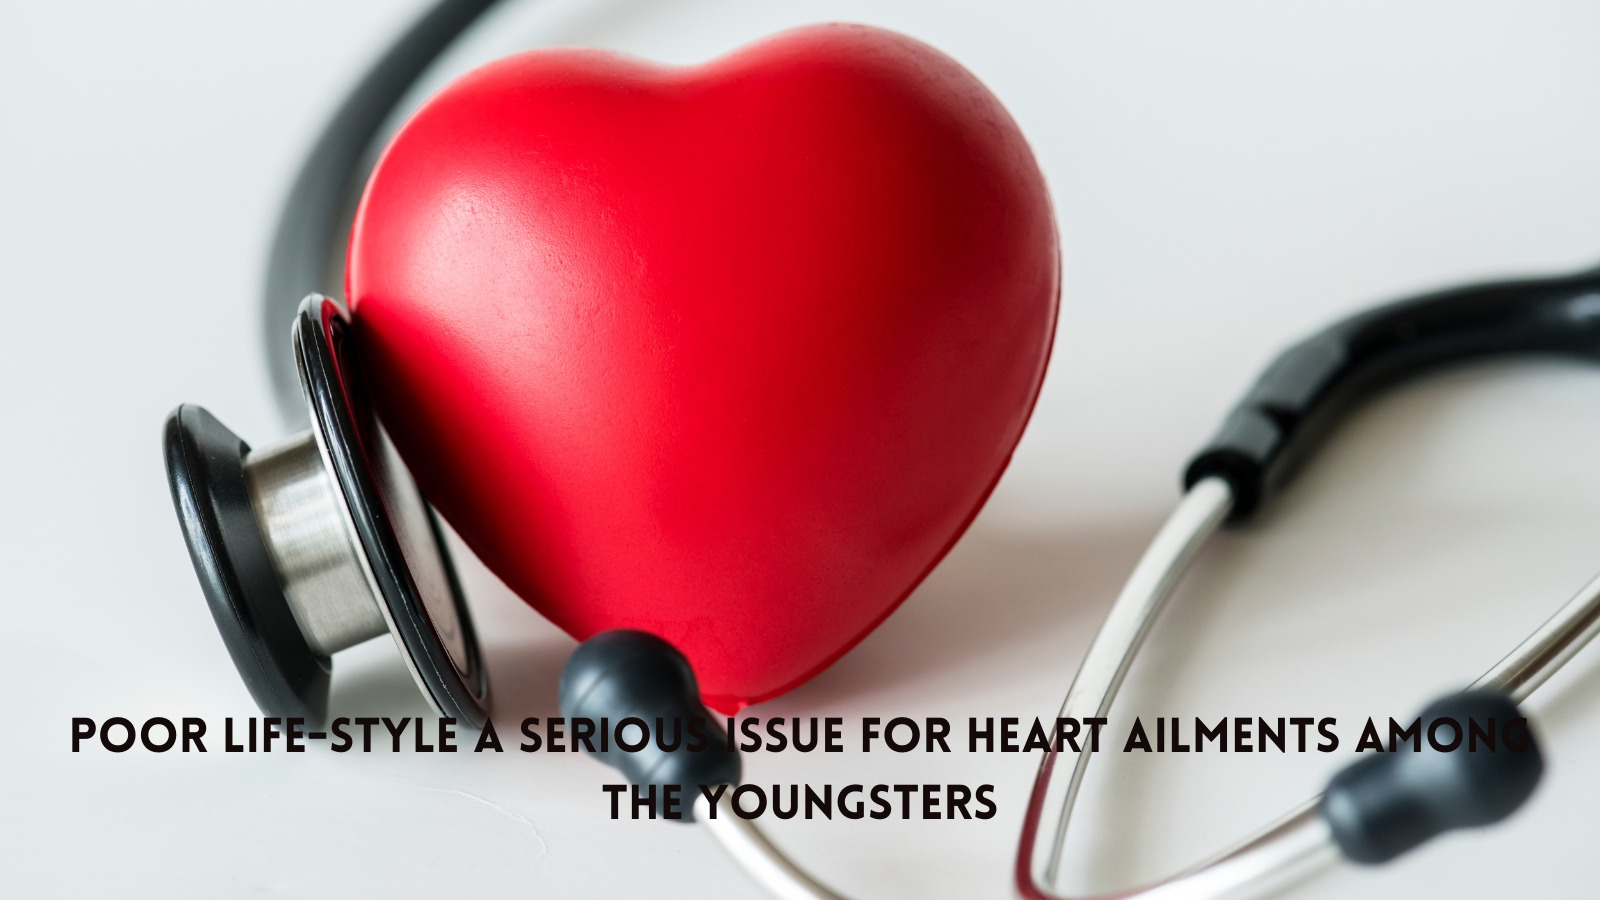 Poor life-style a serious issue for heart ailments among the youngsters